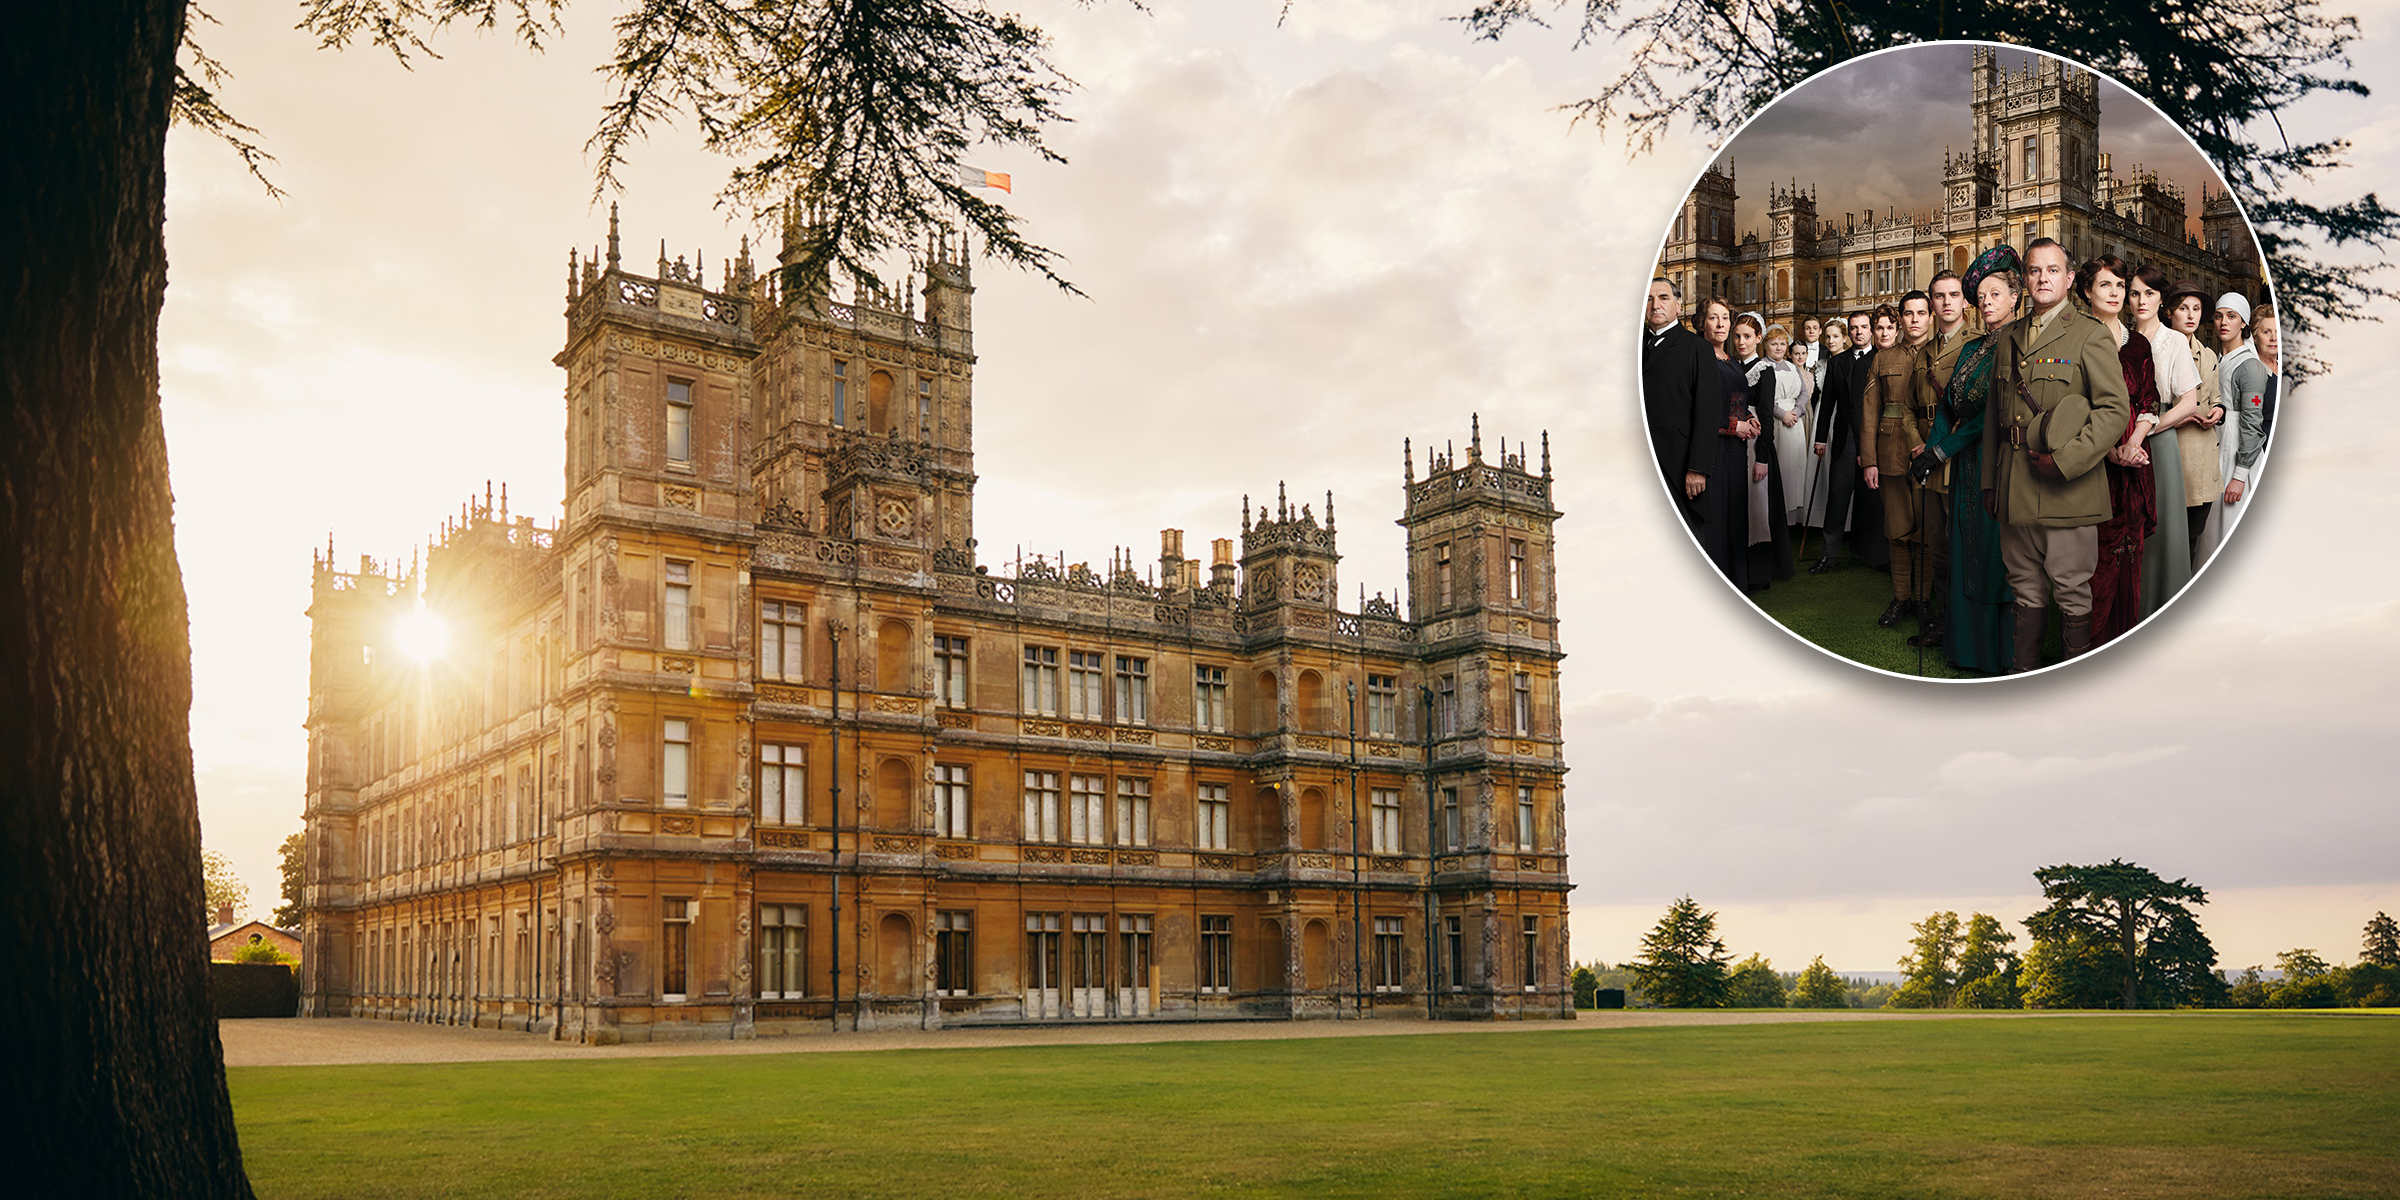 You can stay overnight at the castle from 'Downton Abbey'